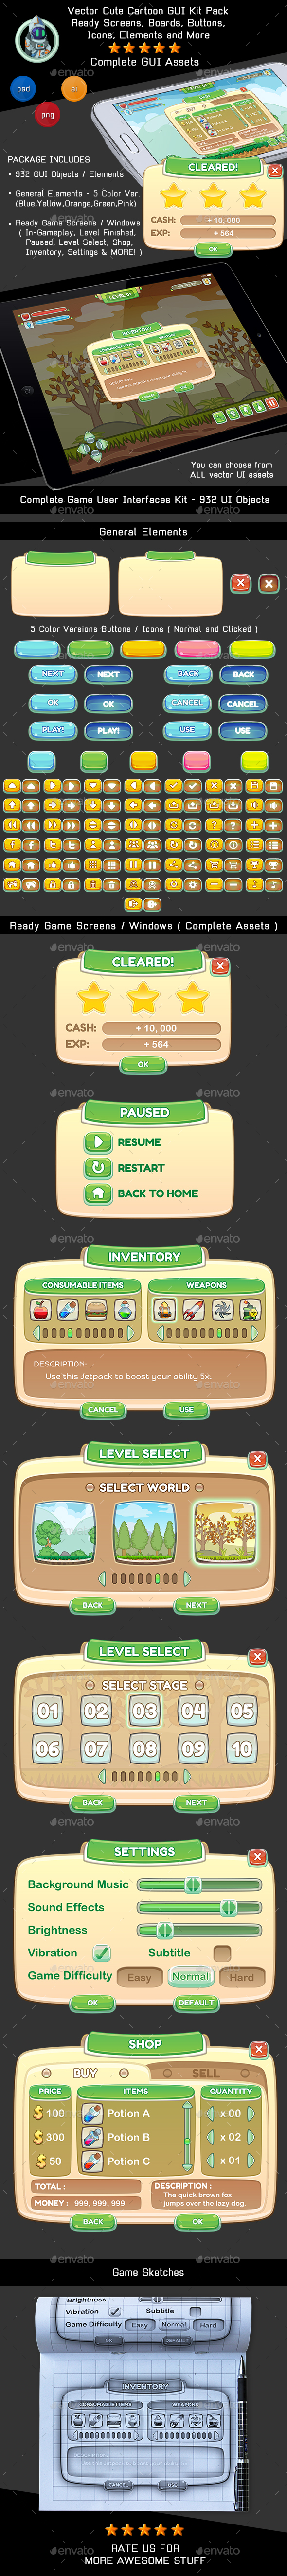 Game User Interfaces Kit - Game Screens, Buttons and Icons (User Interfaces)